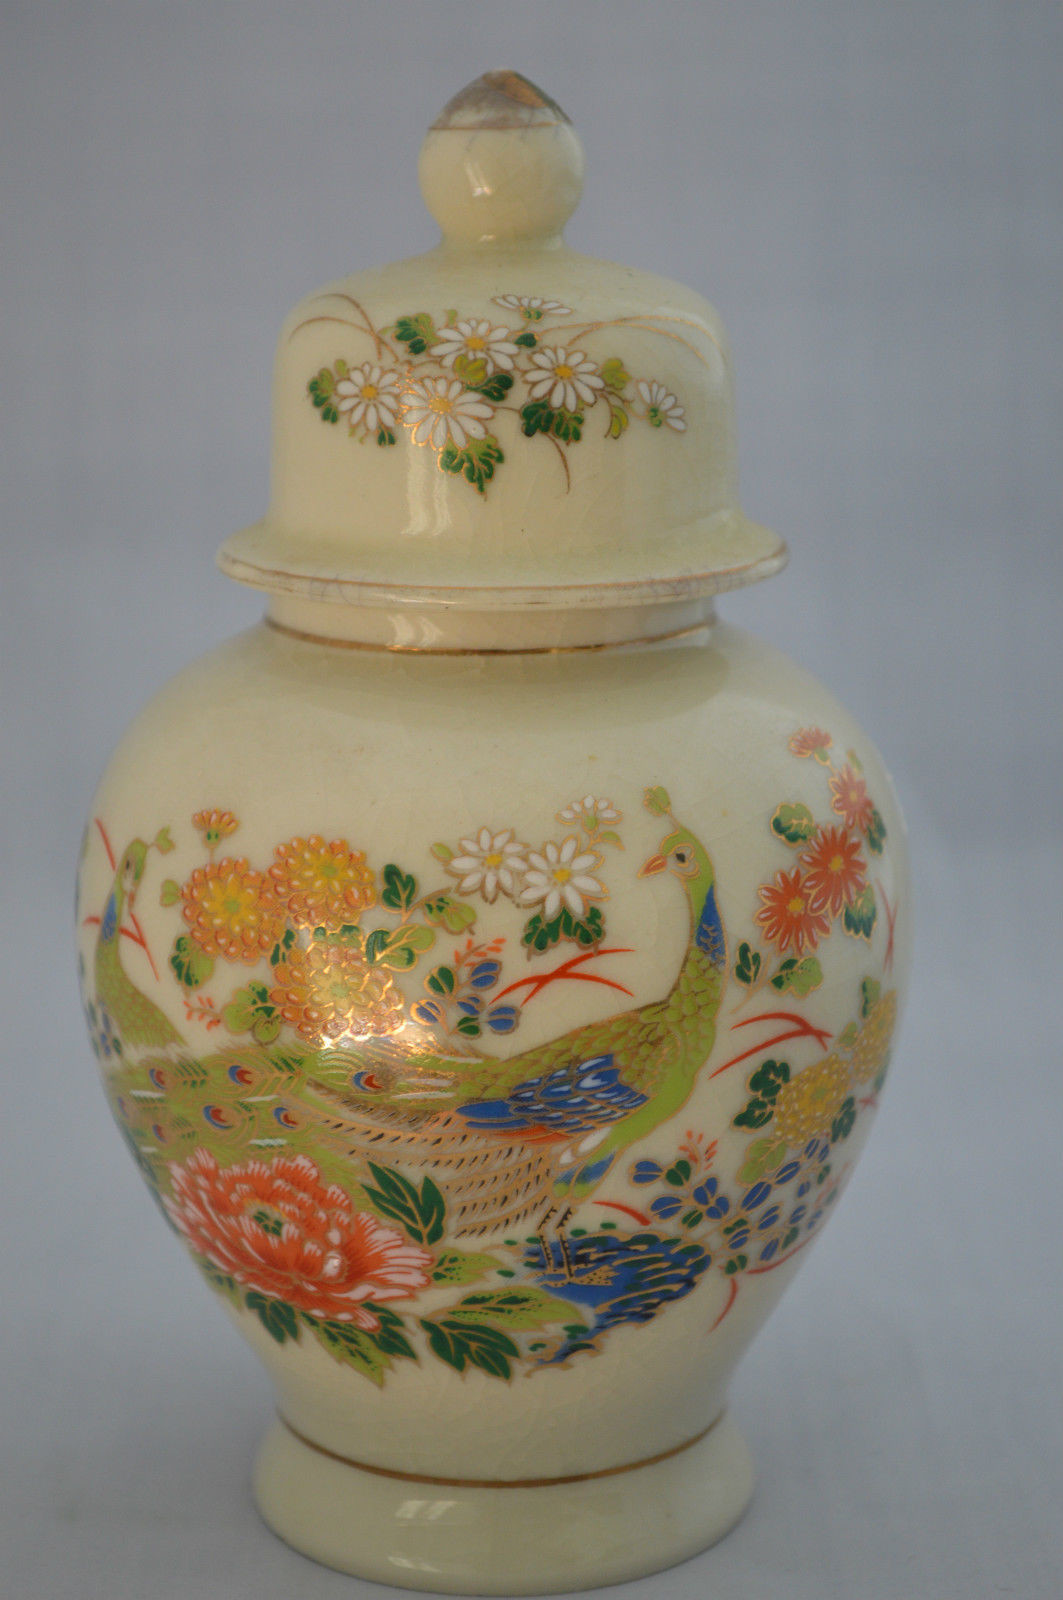 vintage japanese peacock vase of vase lid ginger jar oriental asian japanese decor accent peacock within 1 of 10only 1 available